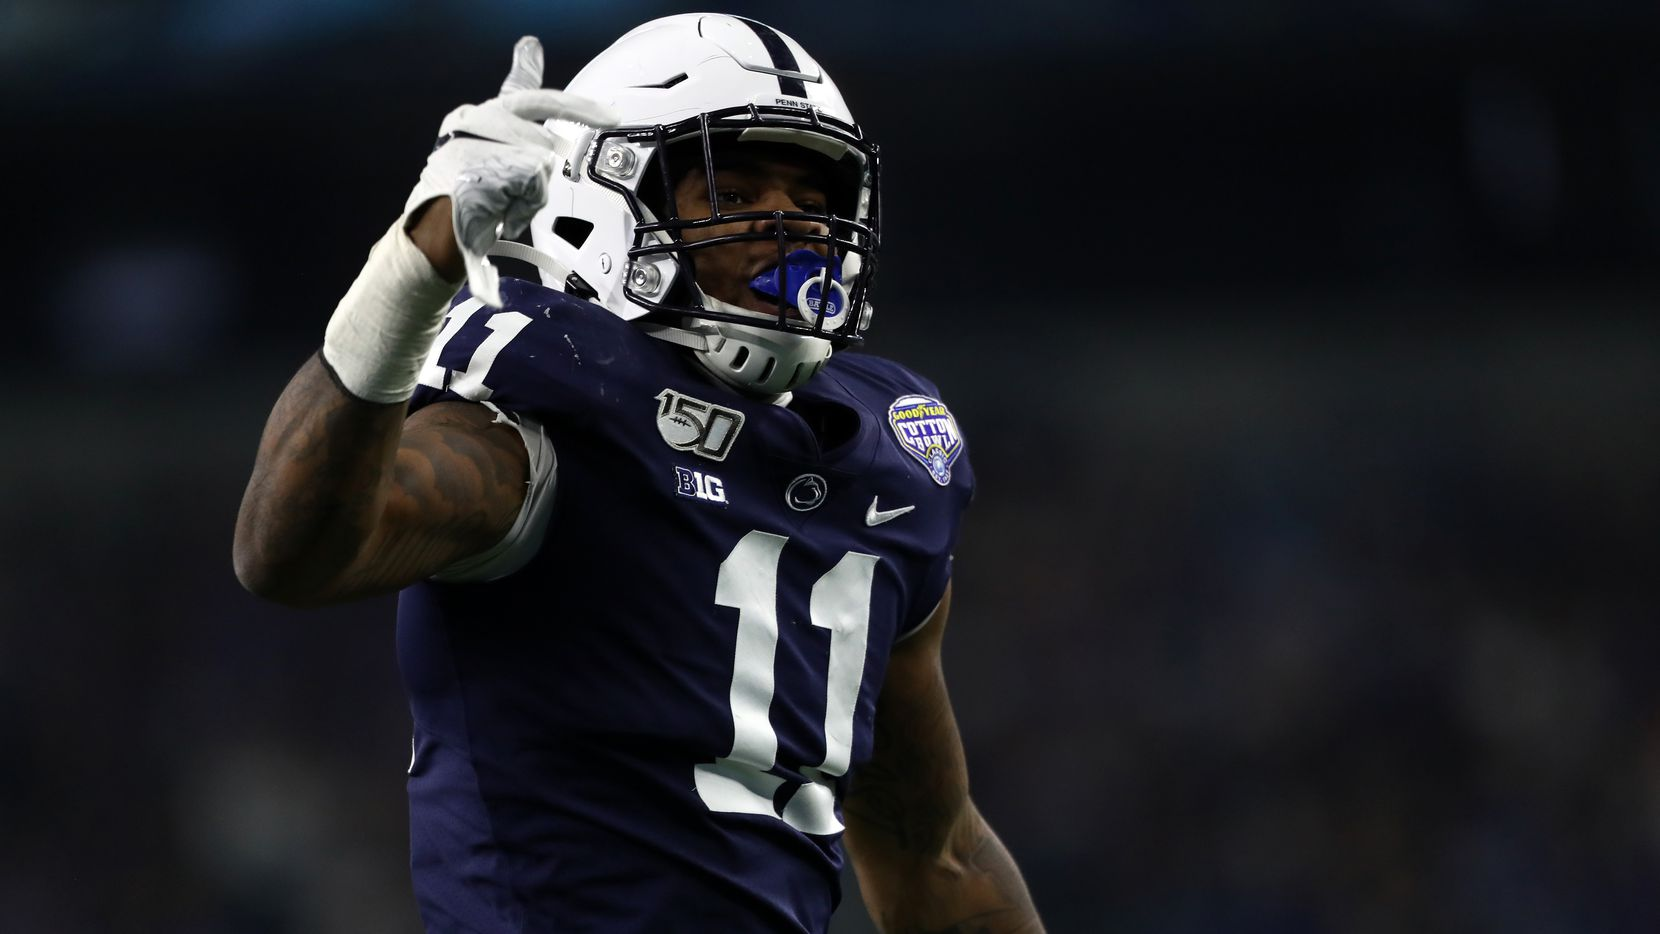 ARLINGTON, TEXAS - DECEMBER 28:  Micah Parsons #11 of the Penn State Nittany Lions reacts after a quarterback sack against Brady White #3 of the Memphis Tigers during the first half of the Goodyear Cotton Bowl Classic at AT&T Stadium on December 28, 2019 in Arlington, Texas. (Photo by Ronald Martinez/Getty Images)